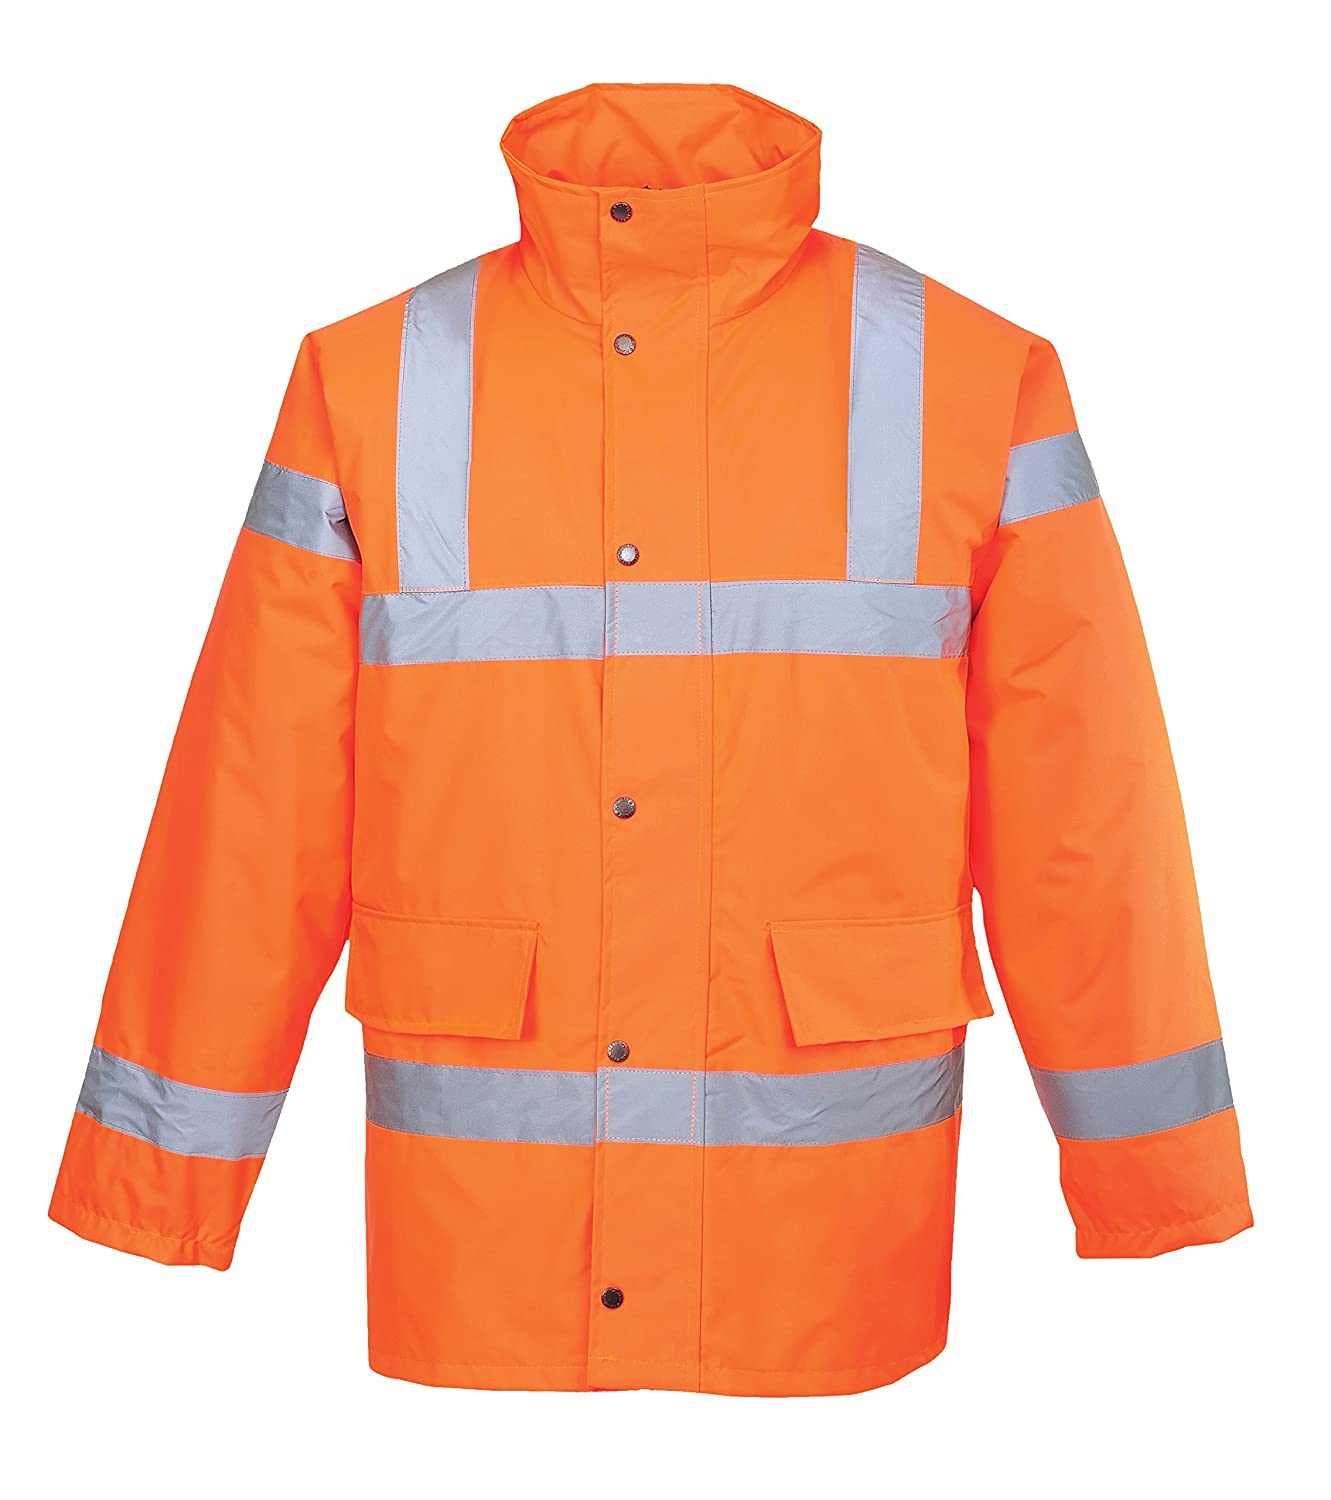 Portwest S460ORRXXXL Hi-Vis Traffic Jacket, Regular, Size 3X-Large, Orange Portwest Clothing Ltd